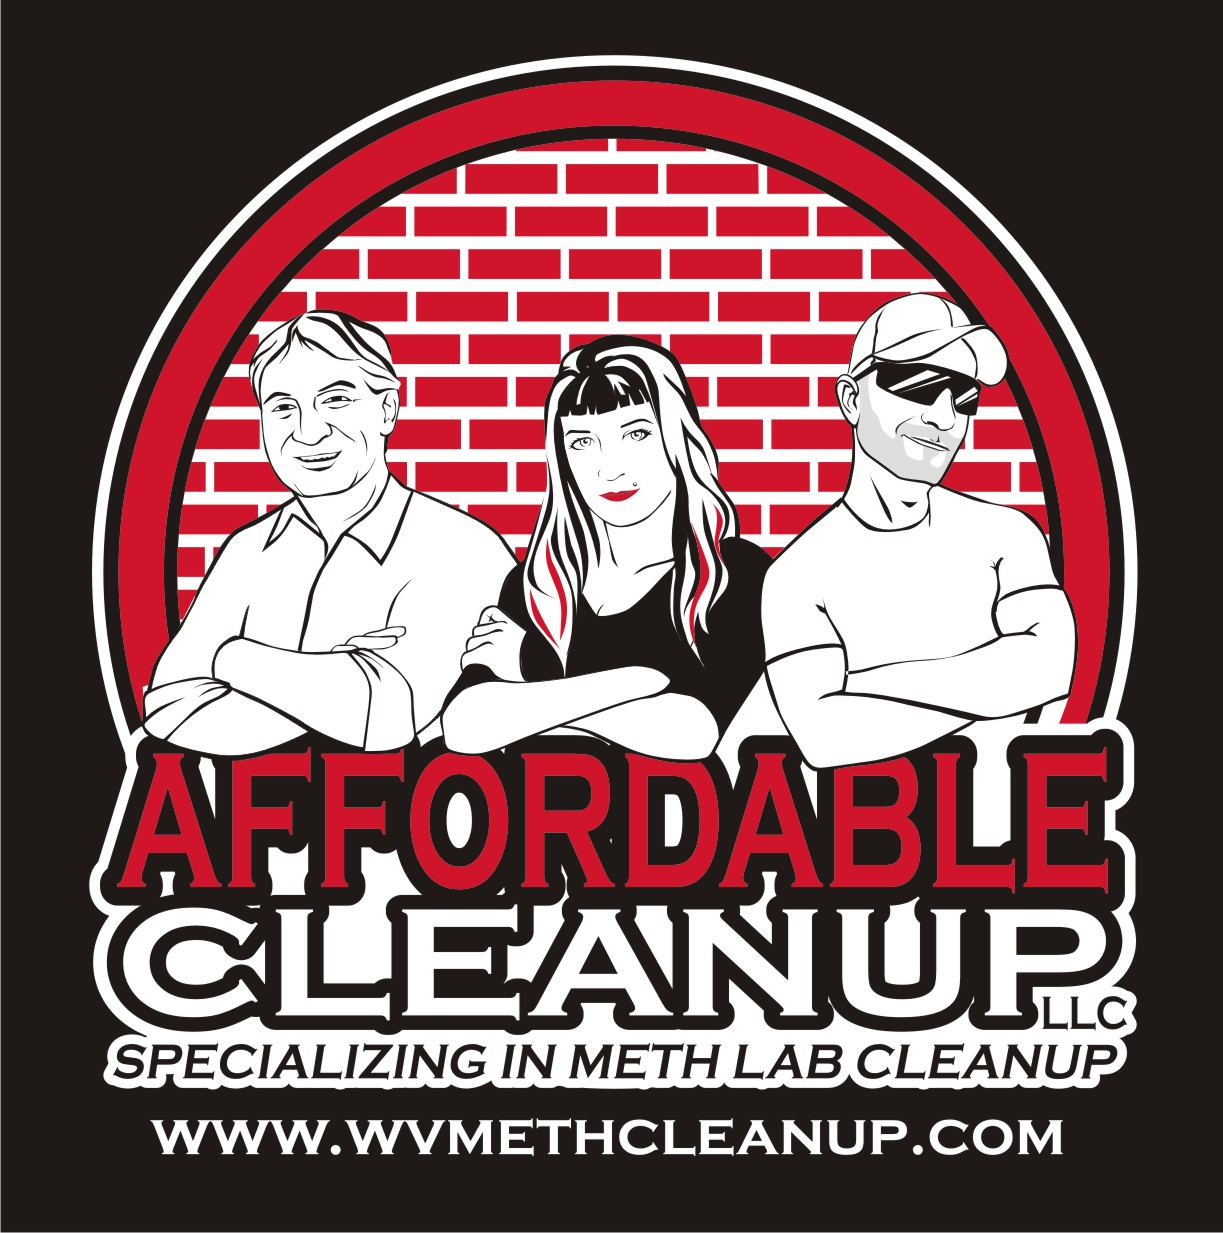 Affordable Cleanup LLC logo - Meth remediation in WV